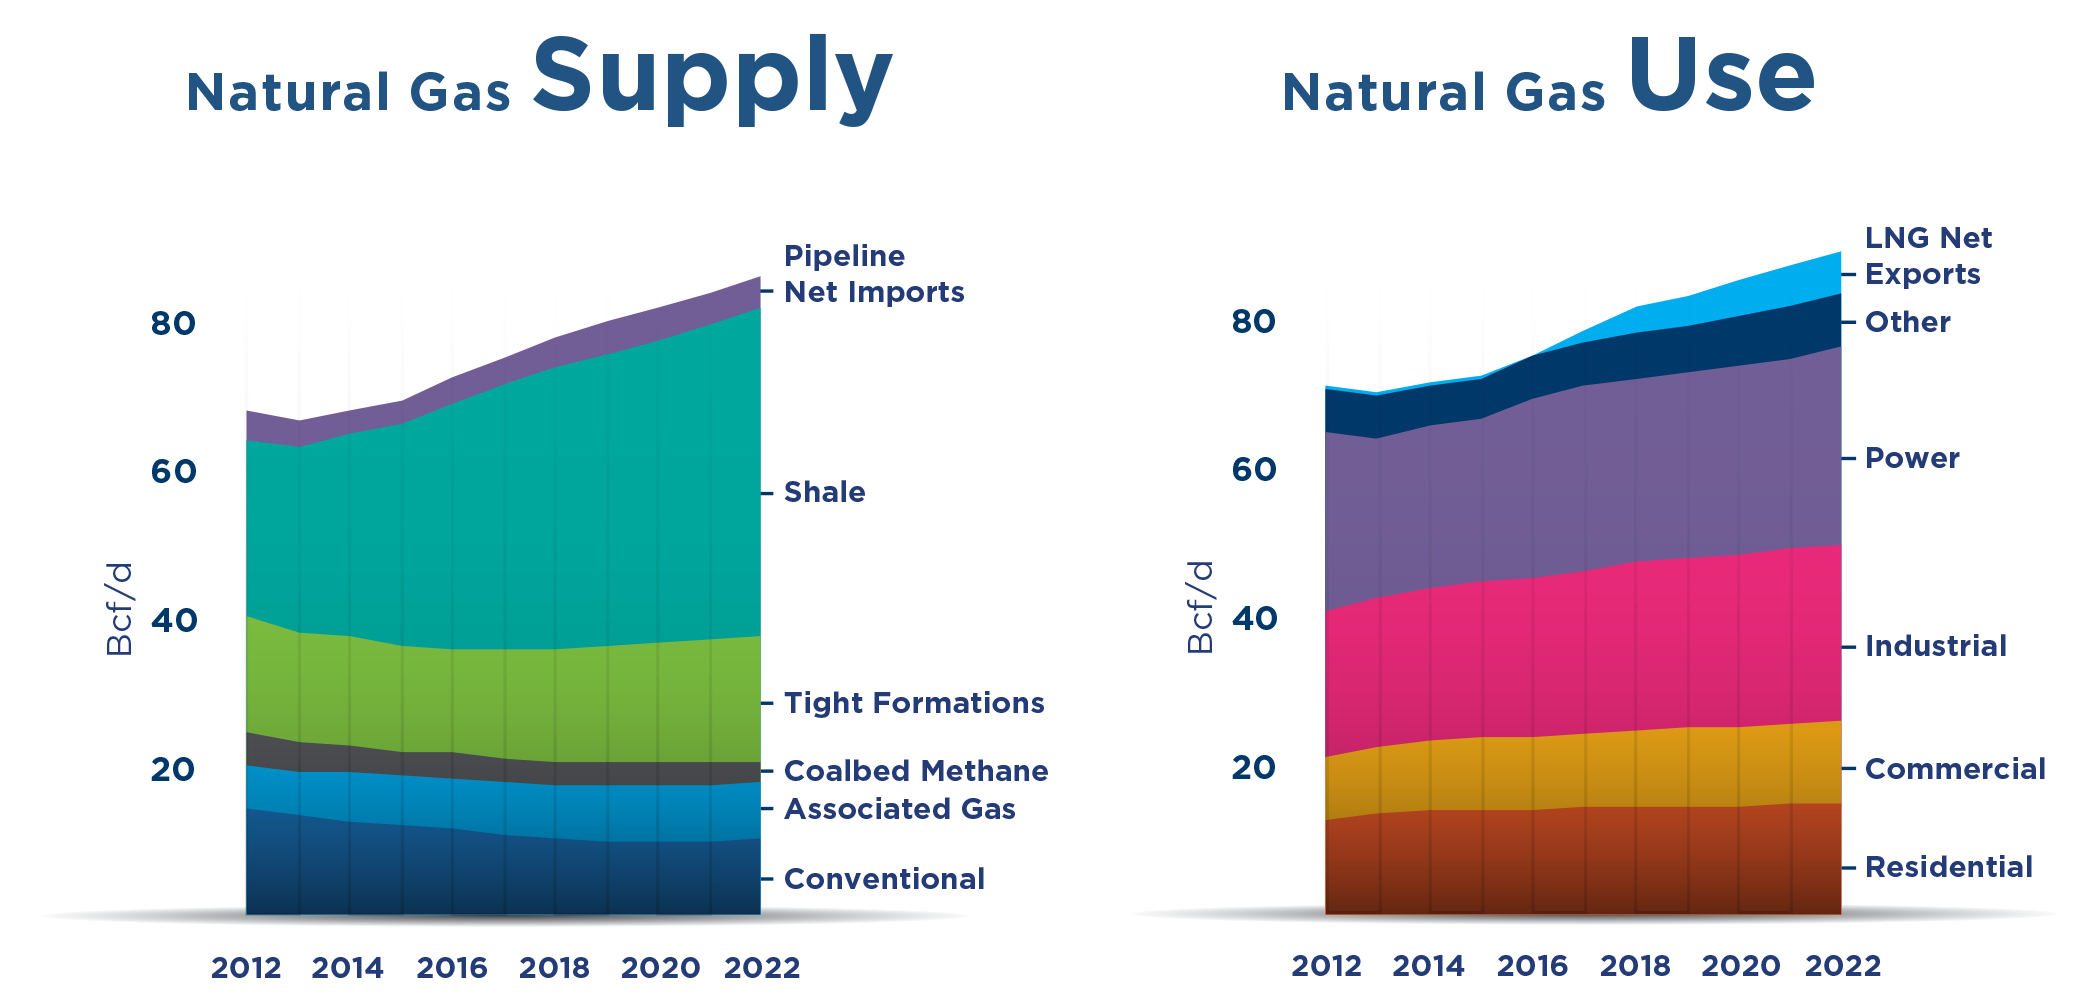 Natural gas supply and use have kept pace for the last five years, and should remain so for the next five years.